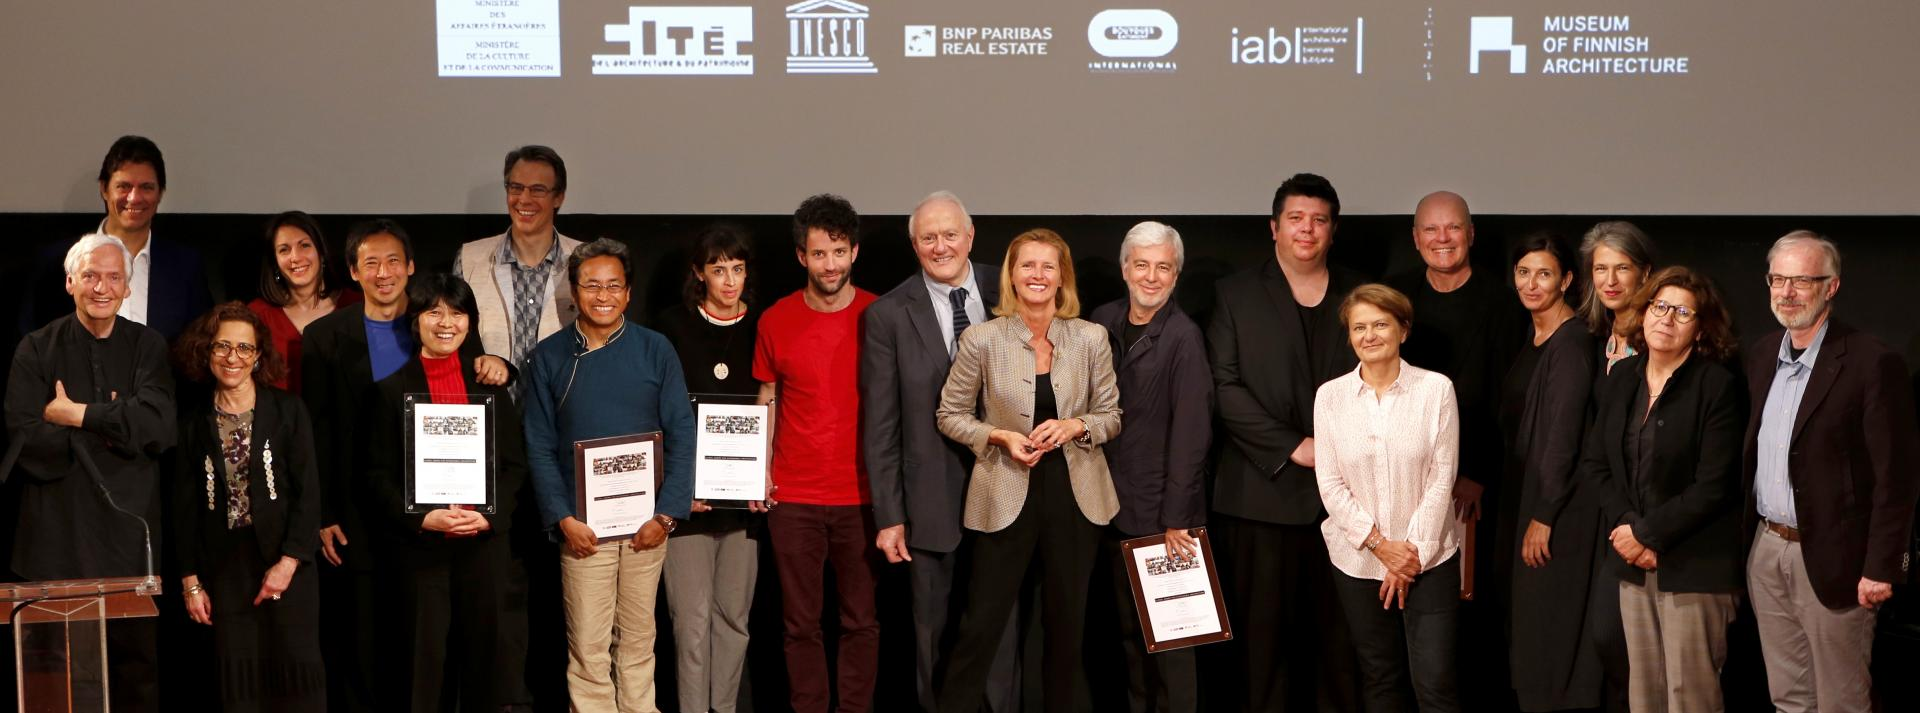 Global Award for Sustainable Architecture laureates 2017